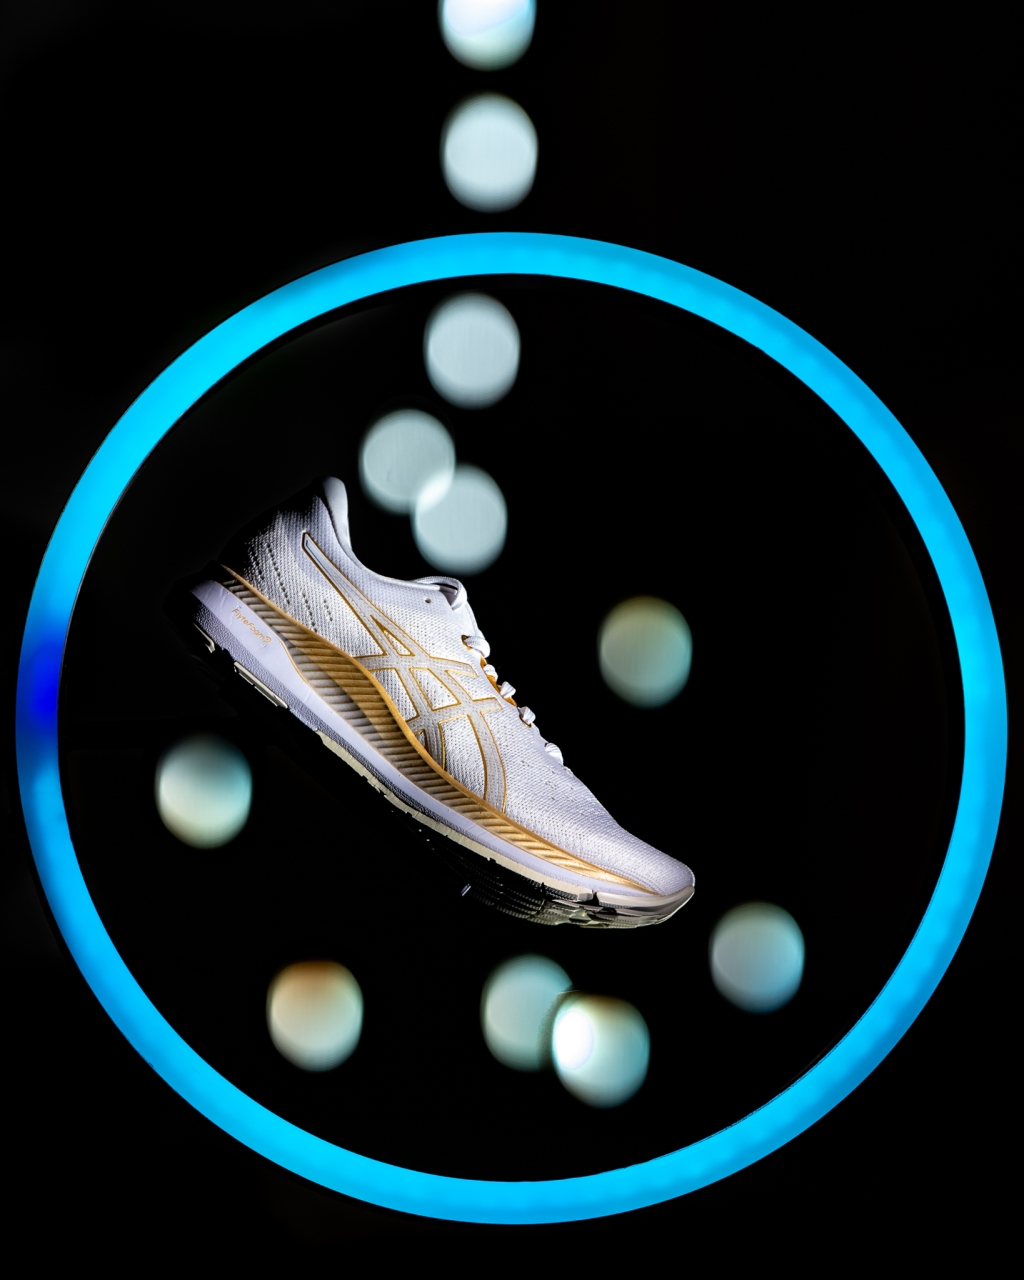 Asics showed off its new EvoRide smart shoe, which is designed to save runners' energy. The company also showcased its sports tech research from its Asics Institute of Sport Science (ISS), which looks into how tech can help people run further, faster and easier.